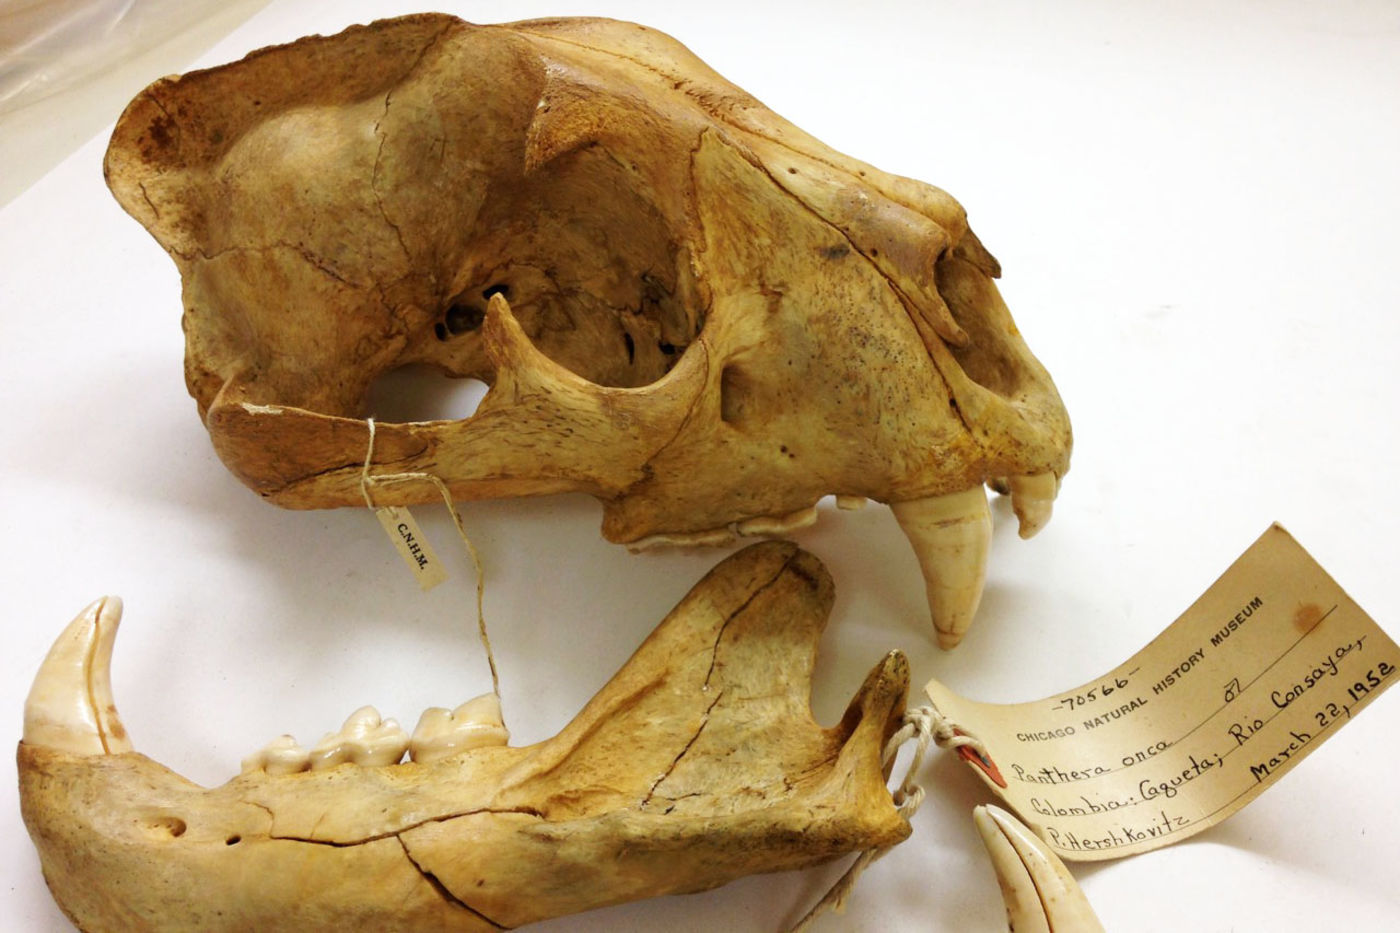 Yellowed skull of a jaguar, with the lower jaw separated. A specimen tag indicates that it was collected in Colombia on March 22, 1952.